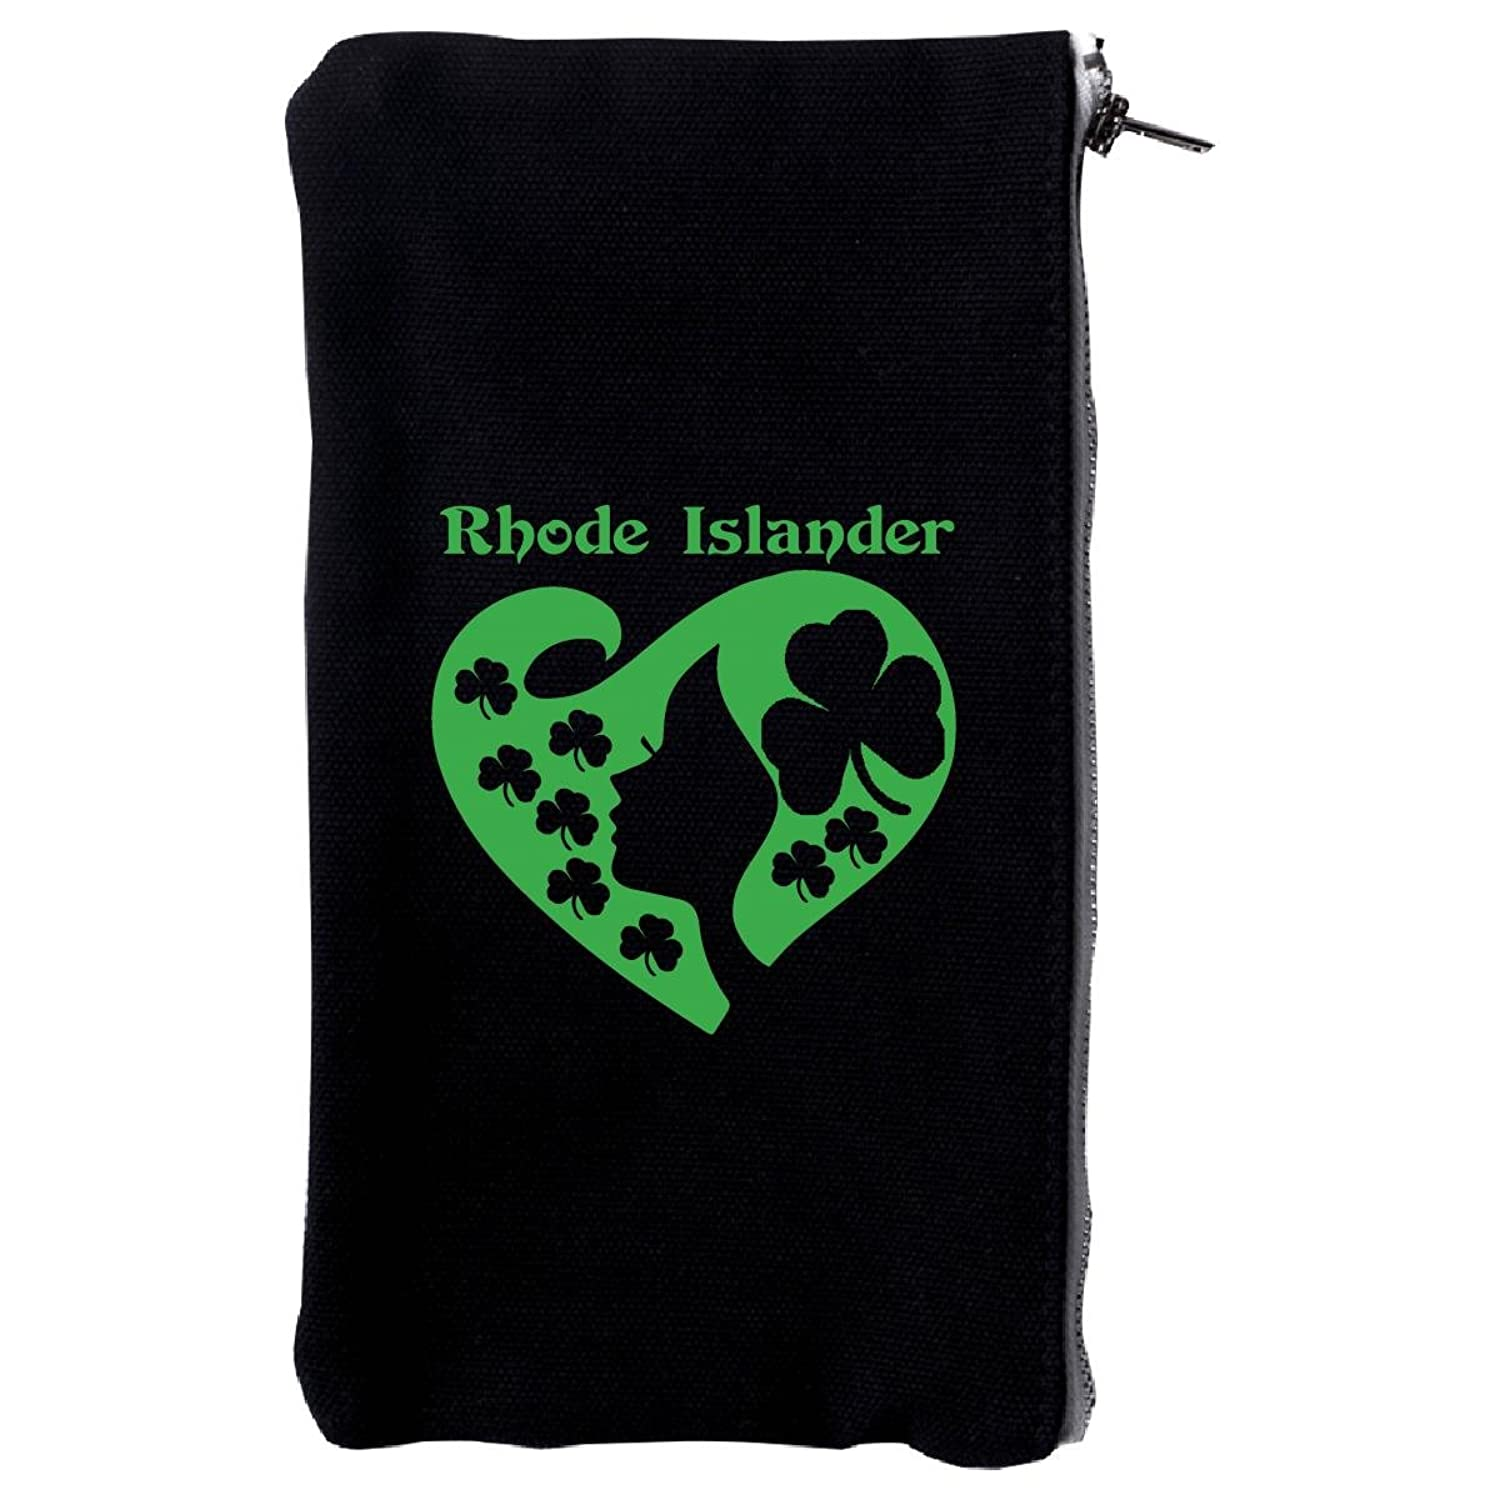 Rhode Islander St Patrick Day Girl Heart Irish Green - Make Up Case